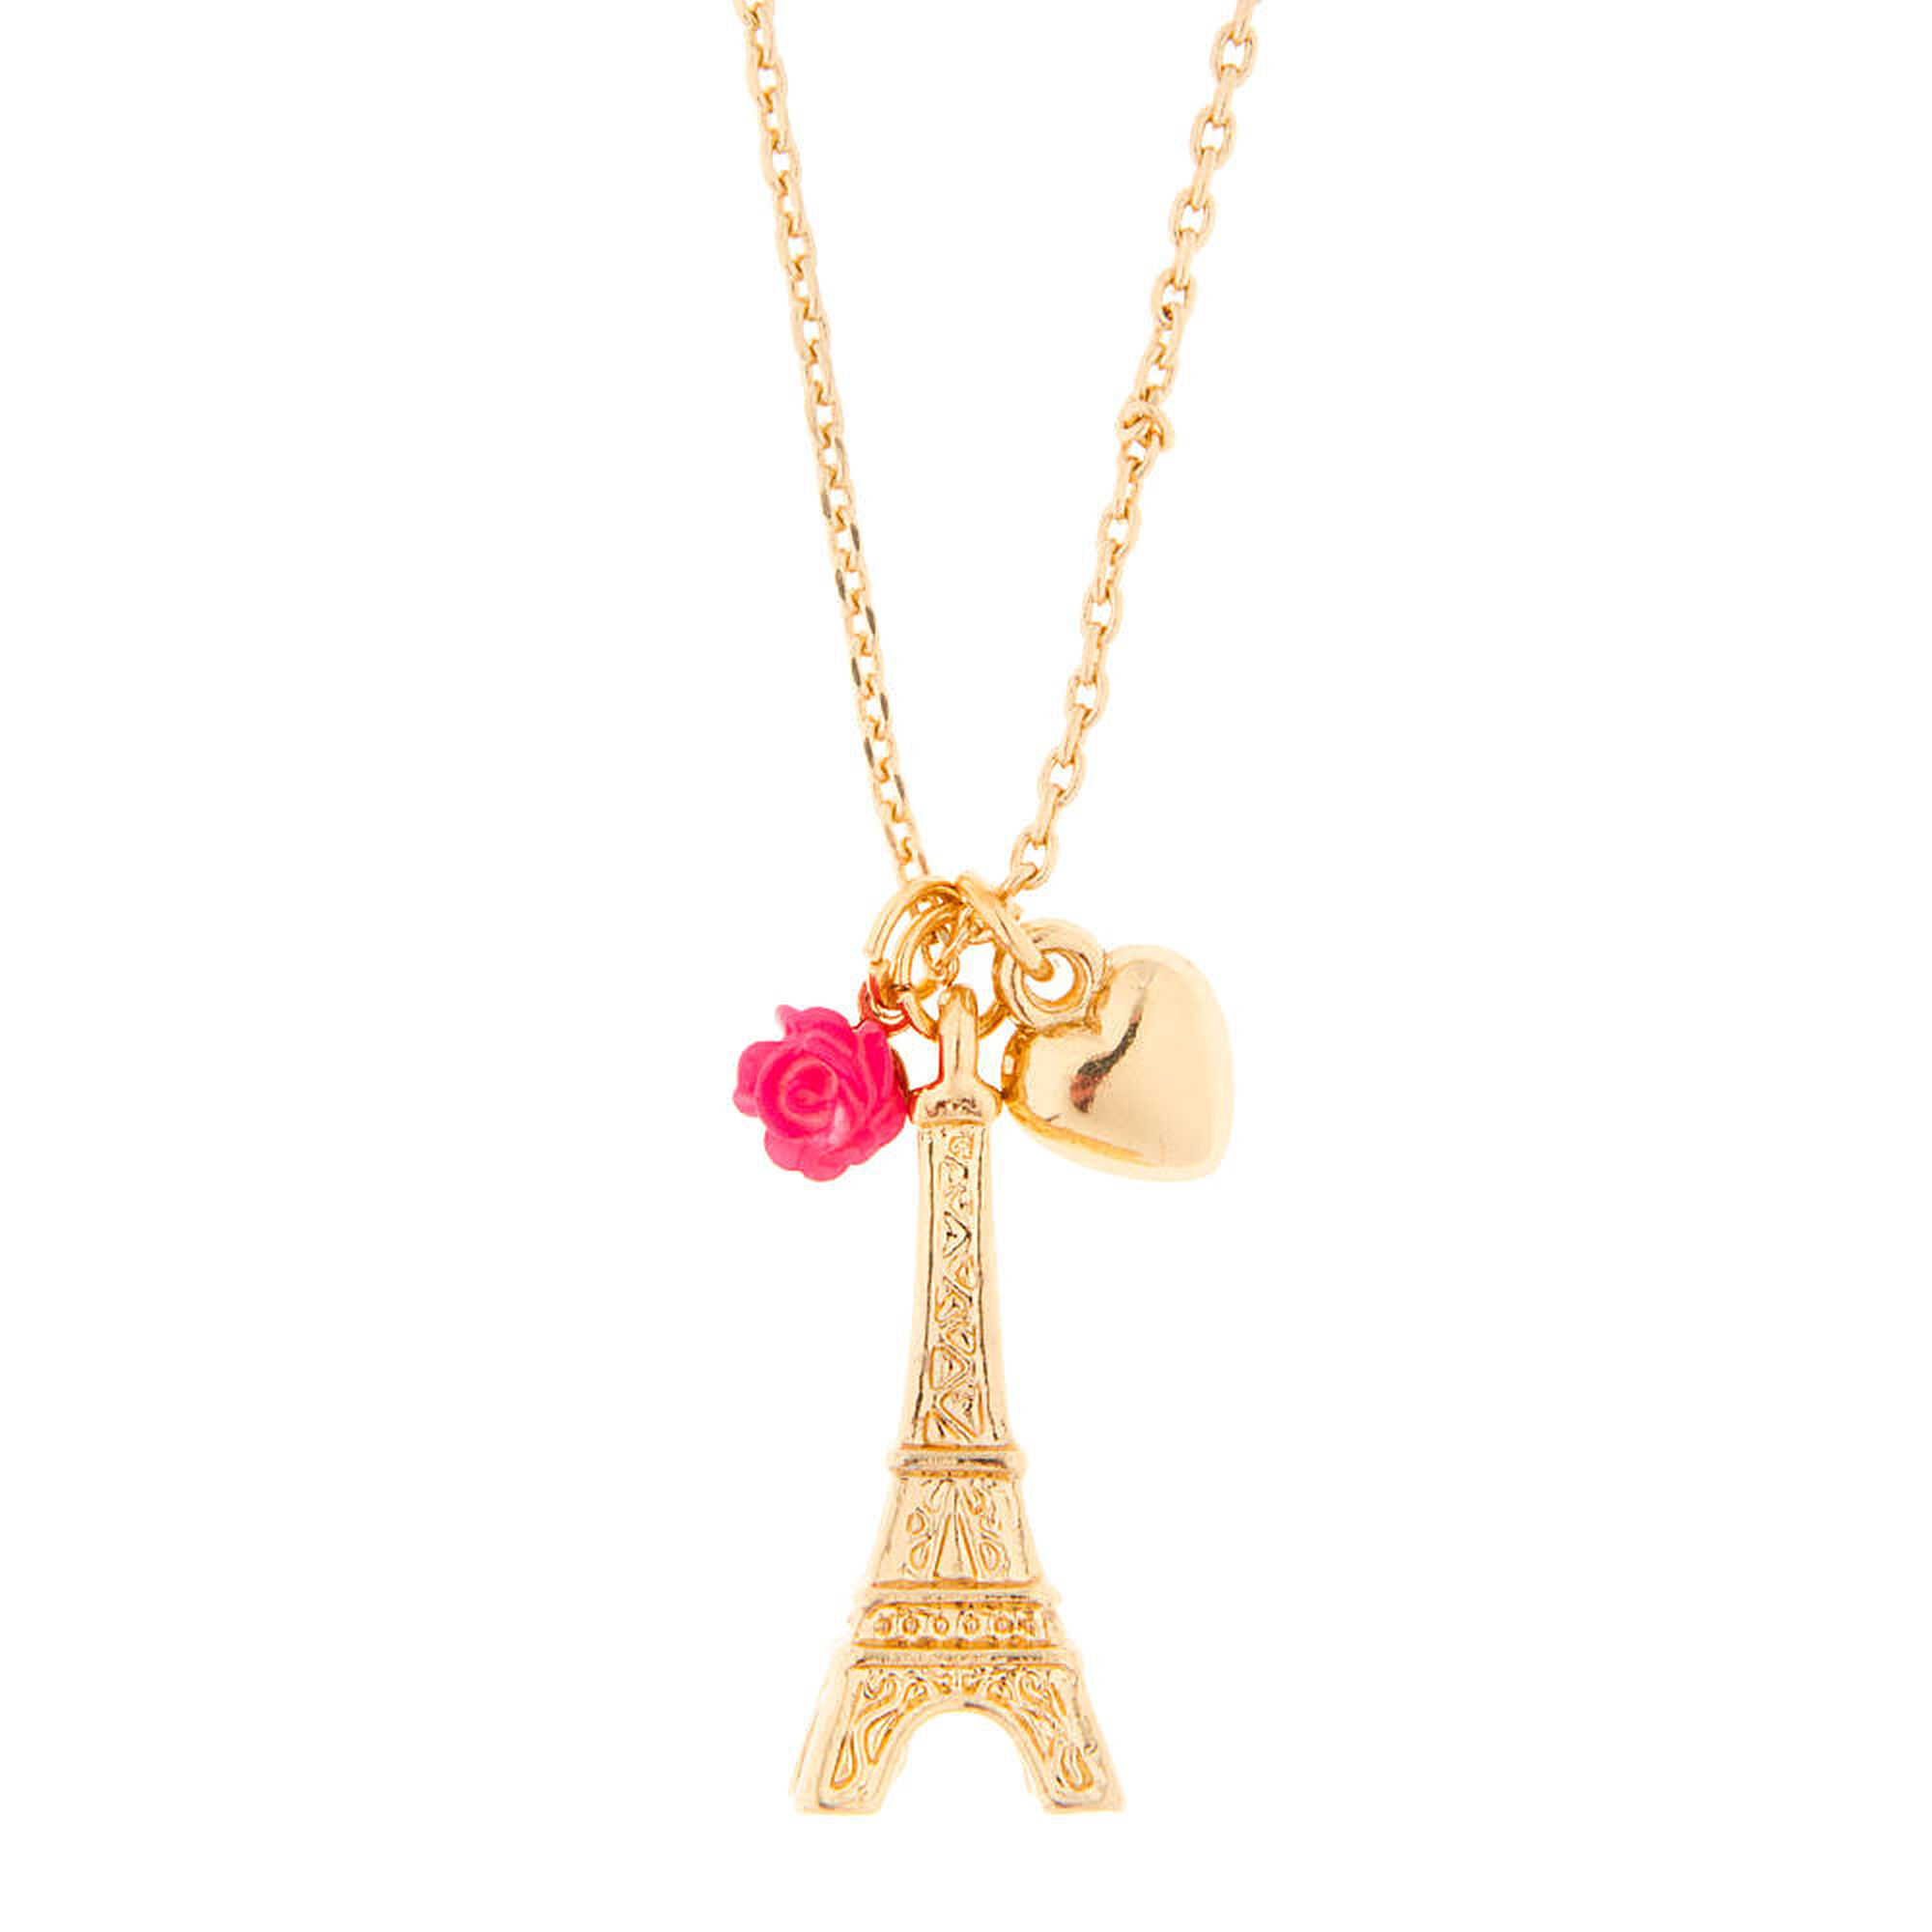 Gold eiffel tower heart and carved rose pendant necklace claires us gold eiffel tower heart and carved rose pendant necklace aloadofball Images